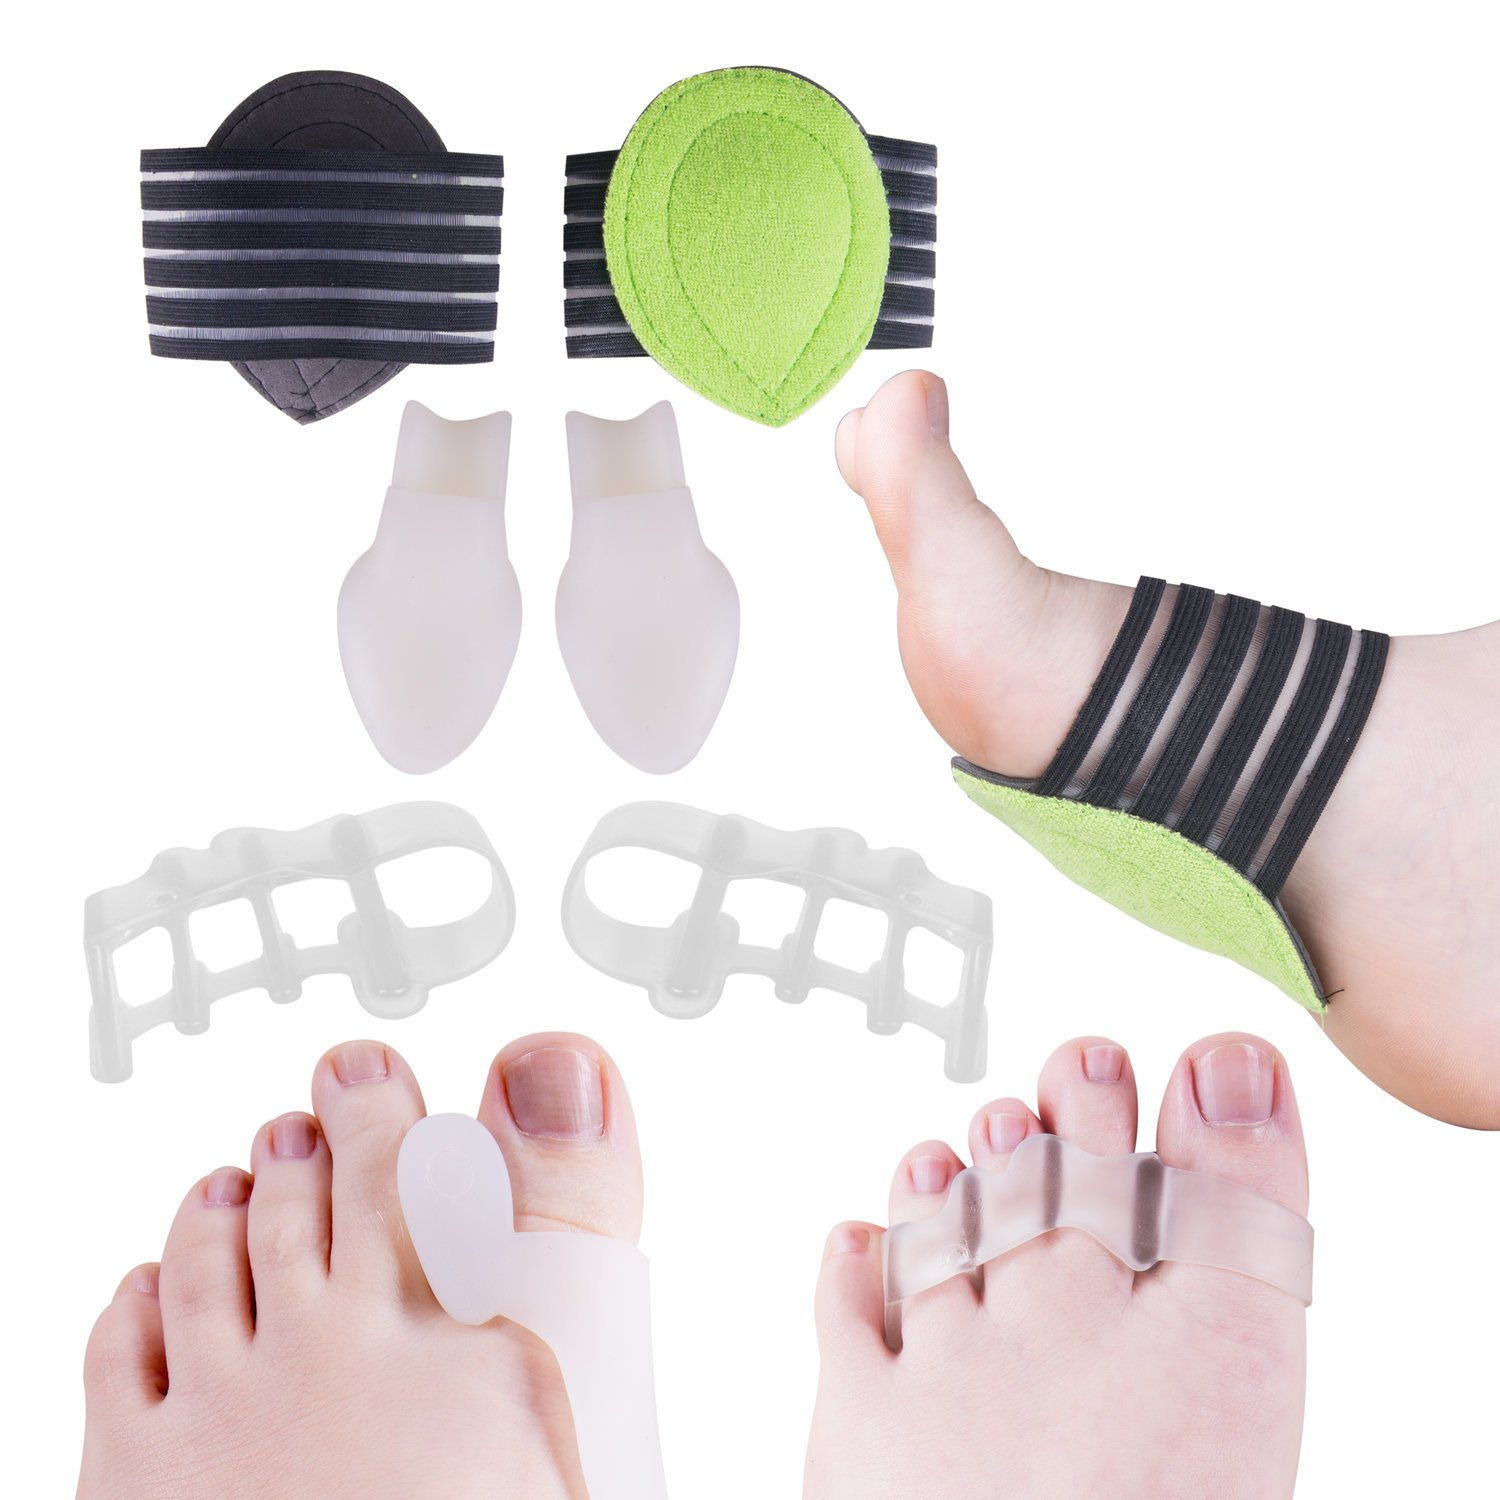 Toe Separators for Bunions Plantar Fasciitis Hammer Toes Yoga Sports By Toe Spacers Pro - Original Gel Toe Stretchers Straightener Spreaders pads - Small Toe Protectors For Men Women - Stop Foot Pain